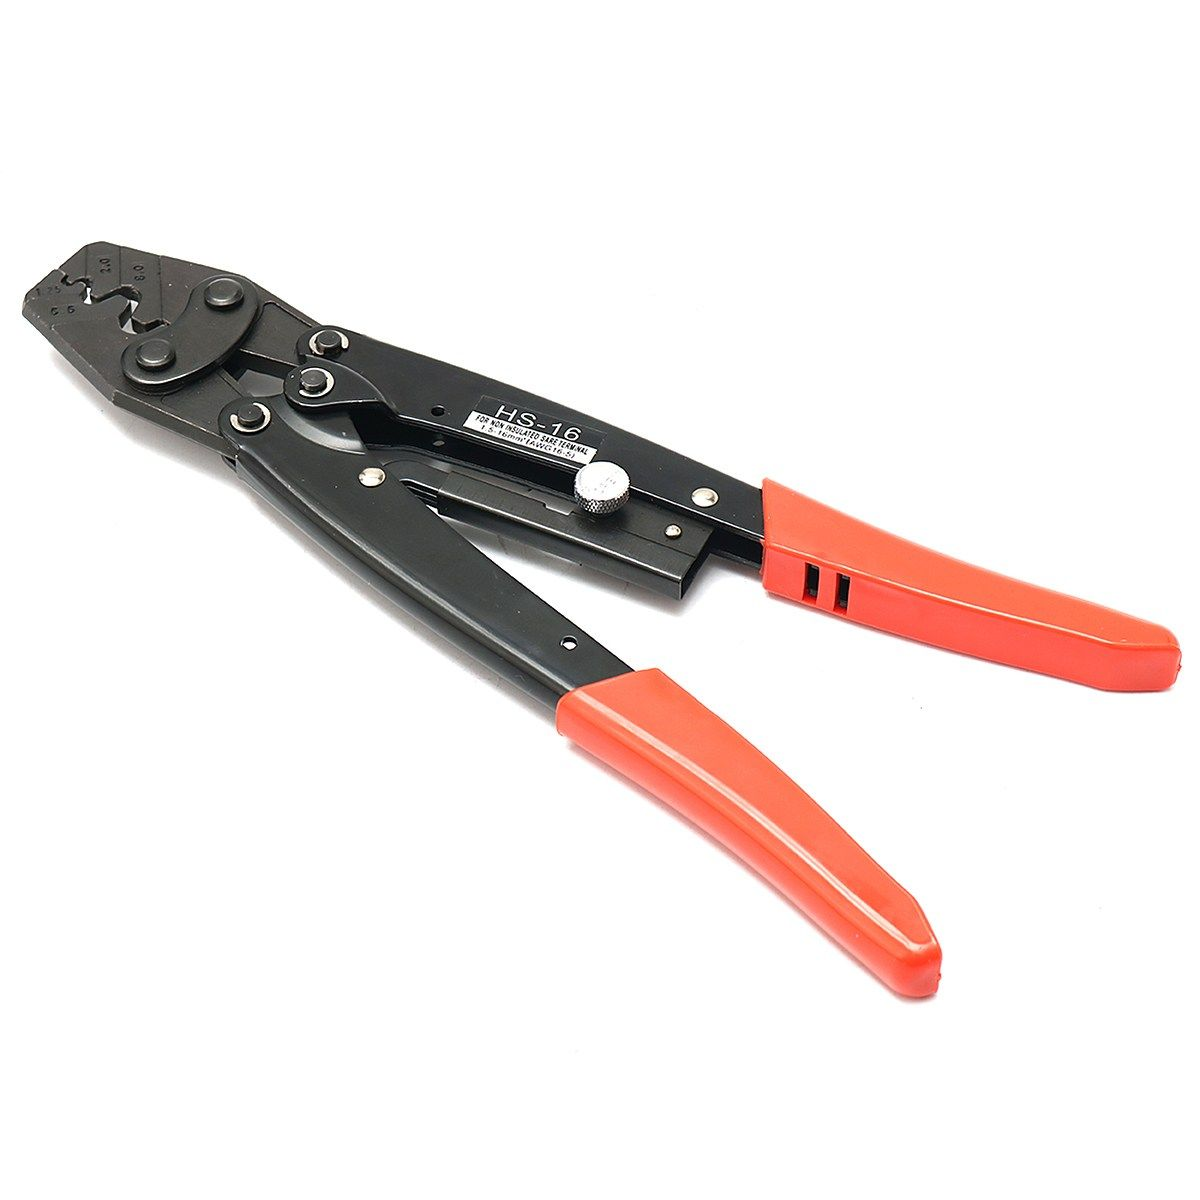 Crimping Pliers HS-16 Cable Lug Crimper Tool Bare Terminal Wire Plier Cutter 1.25-16 square millimeter